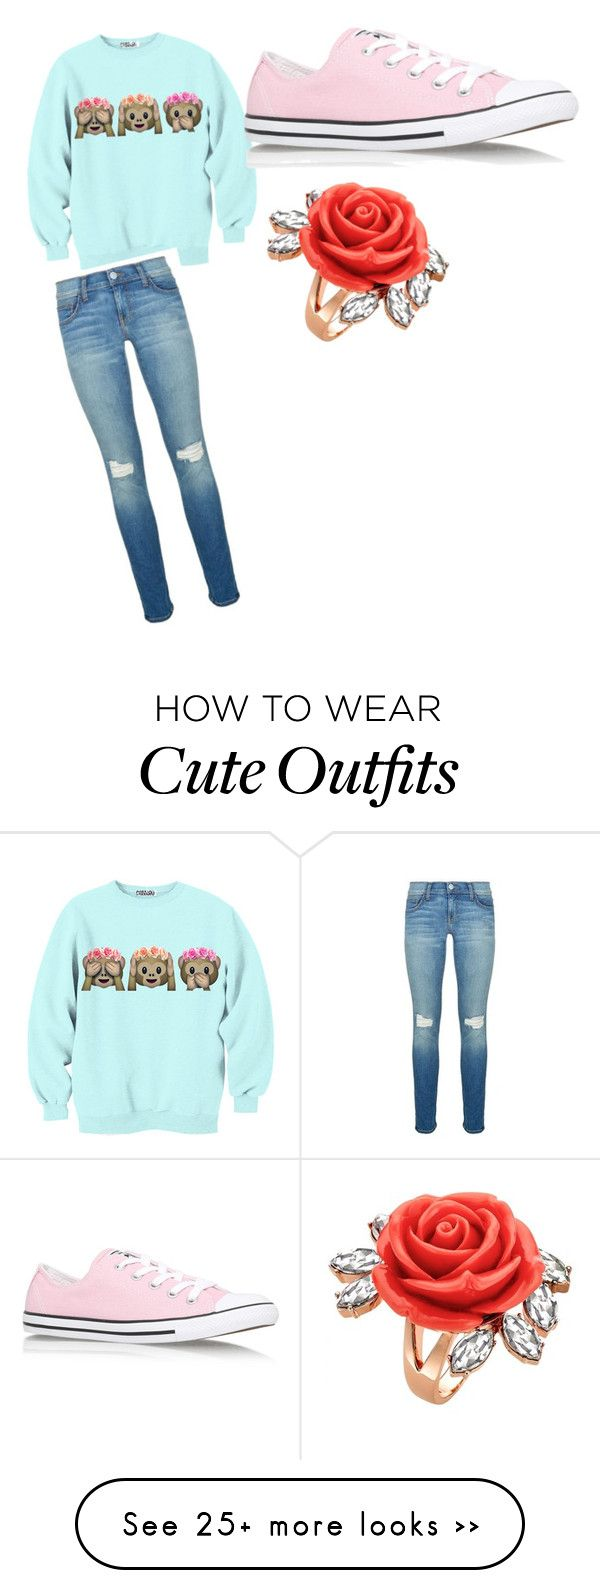 """Cute school outfit"" by jordyjor27 on Polyvore featuring Rebecca Minkoff, Converse and Mawi"